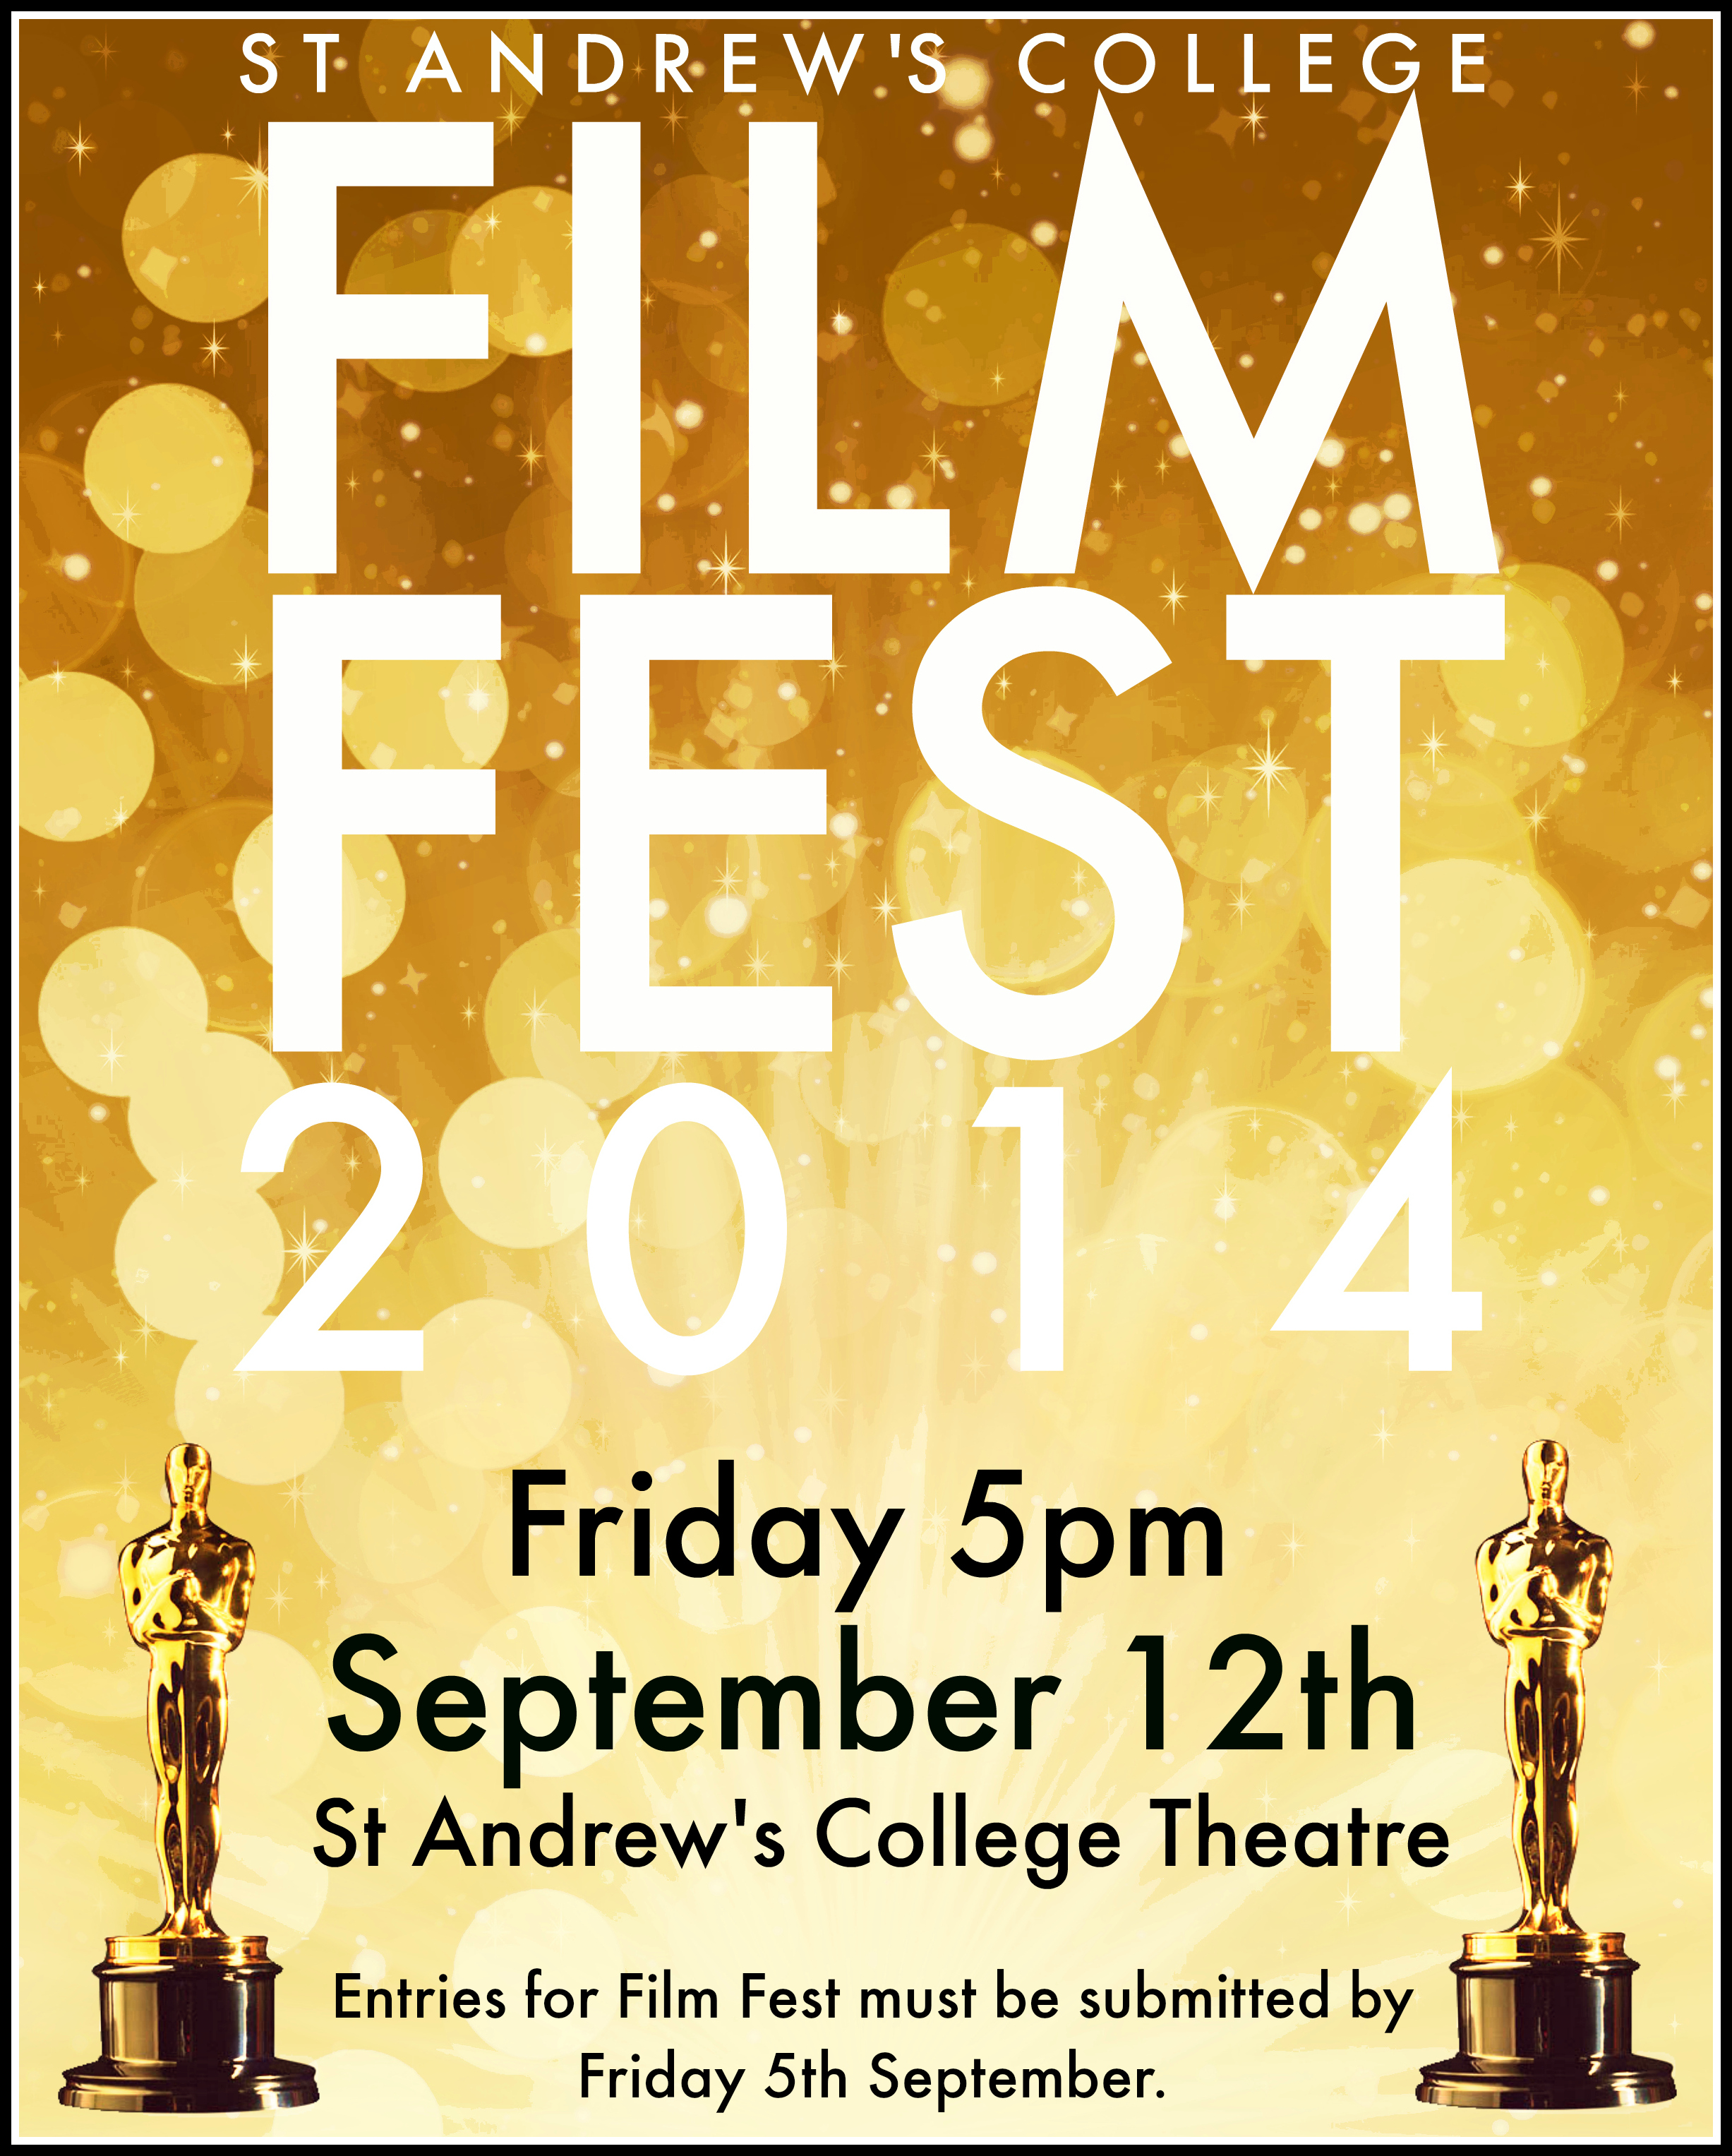 Poster Designed By Sophie Wells To Promote The 2014 Edition Of Annual St Andrews College